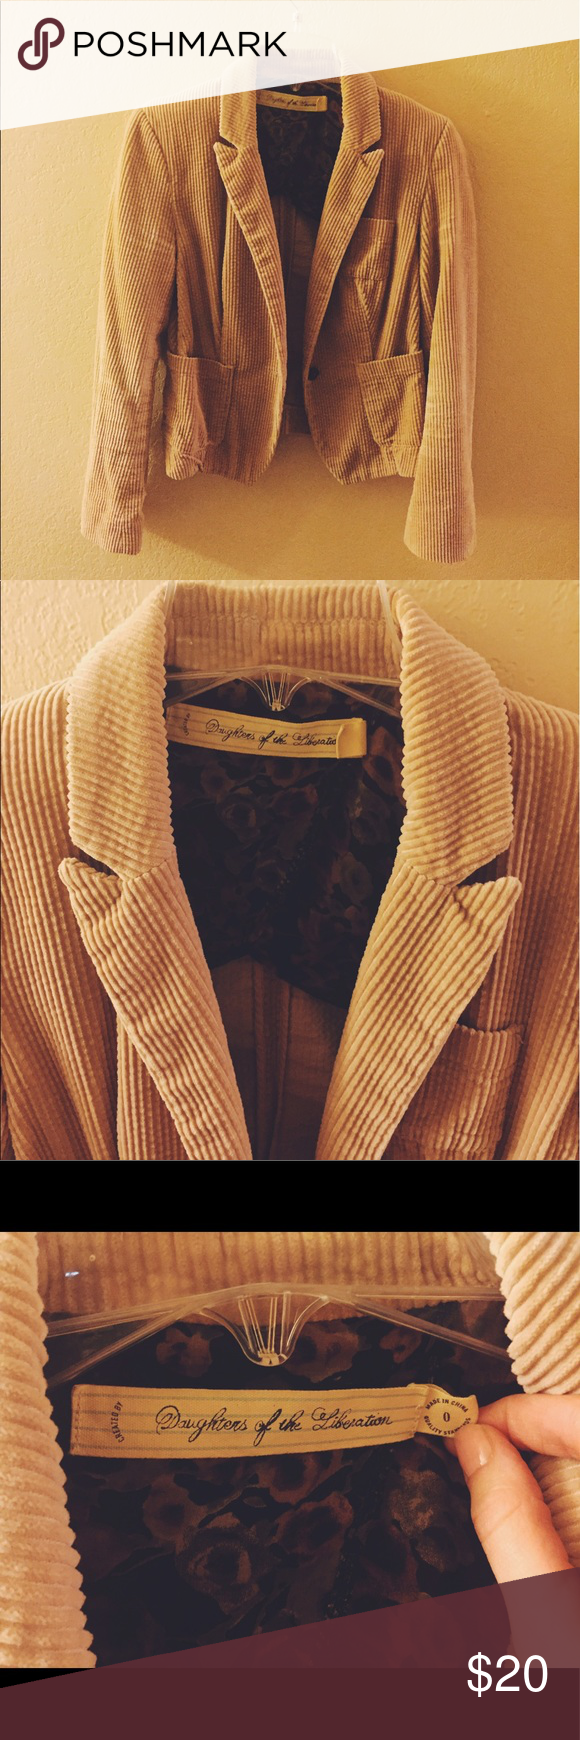 Corduroy Tan jacket from Anthropology This is a SUPER cute tan corduroy jacket that looks perfect for both fall and spring! Anthropologie Jackets & Coats Blazers